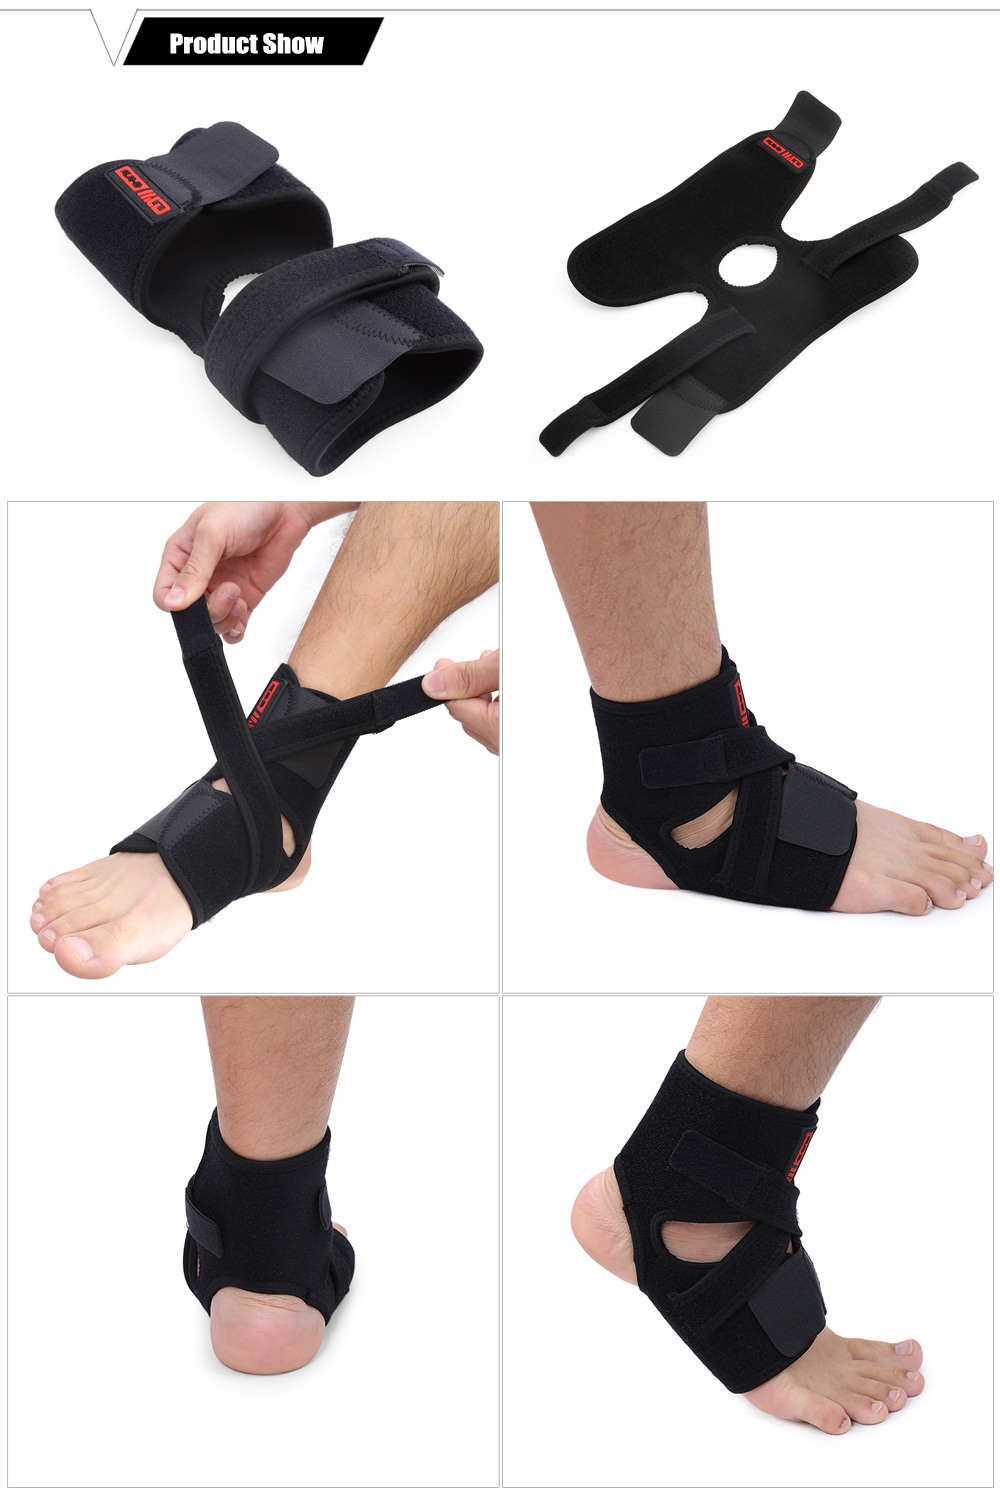 MLD LF - 1109 Crossing Ankle Support for Fitness Sports